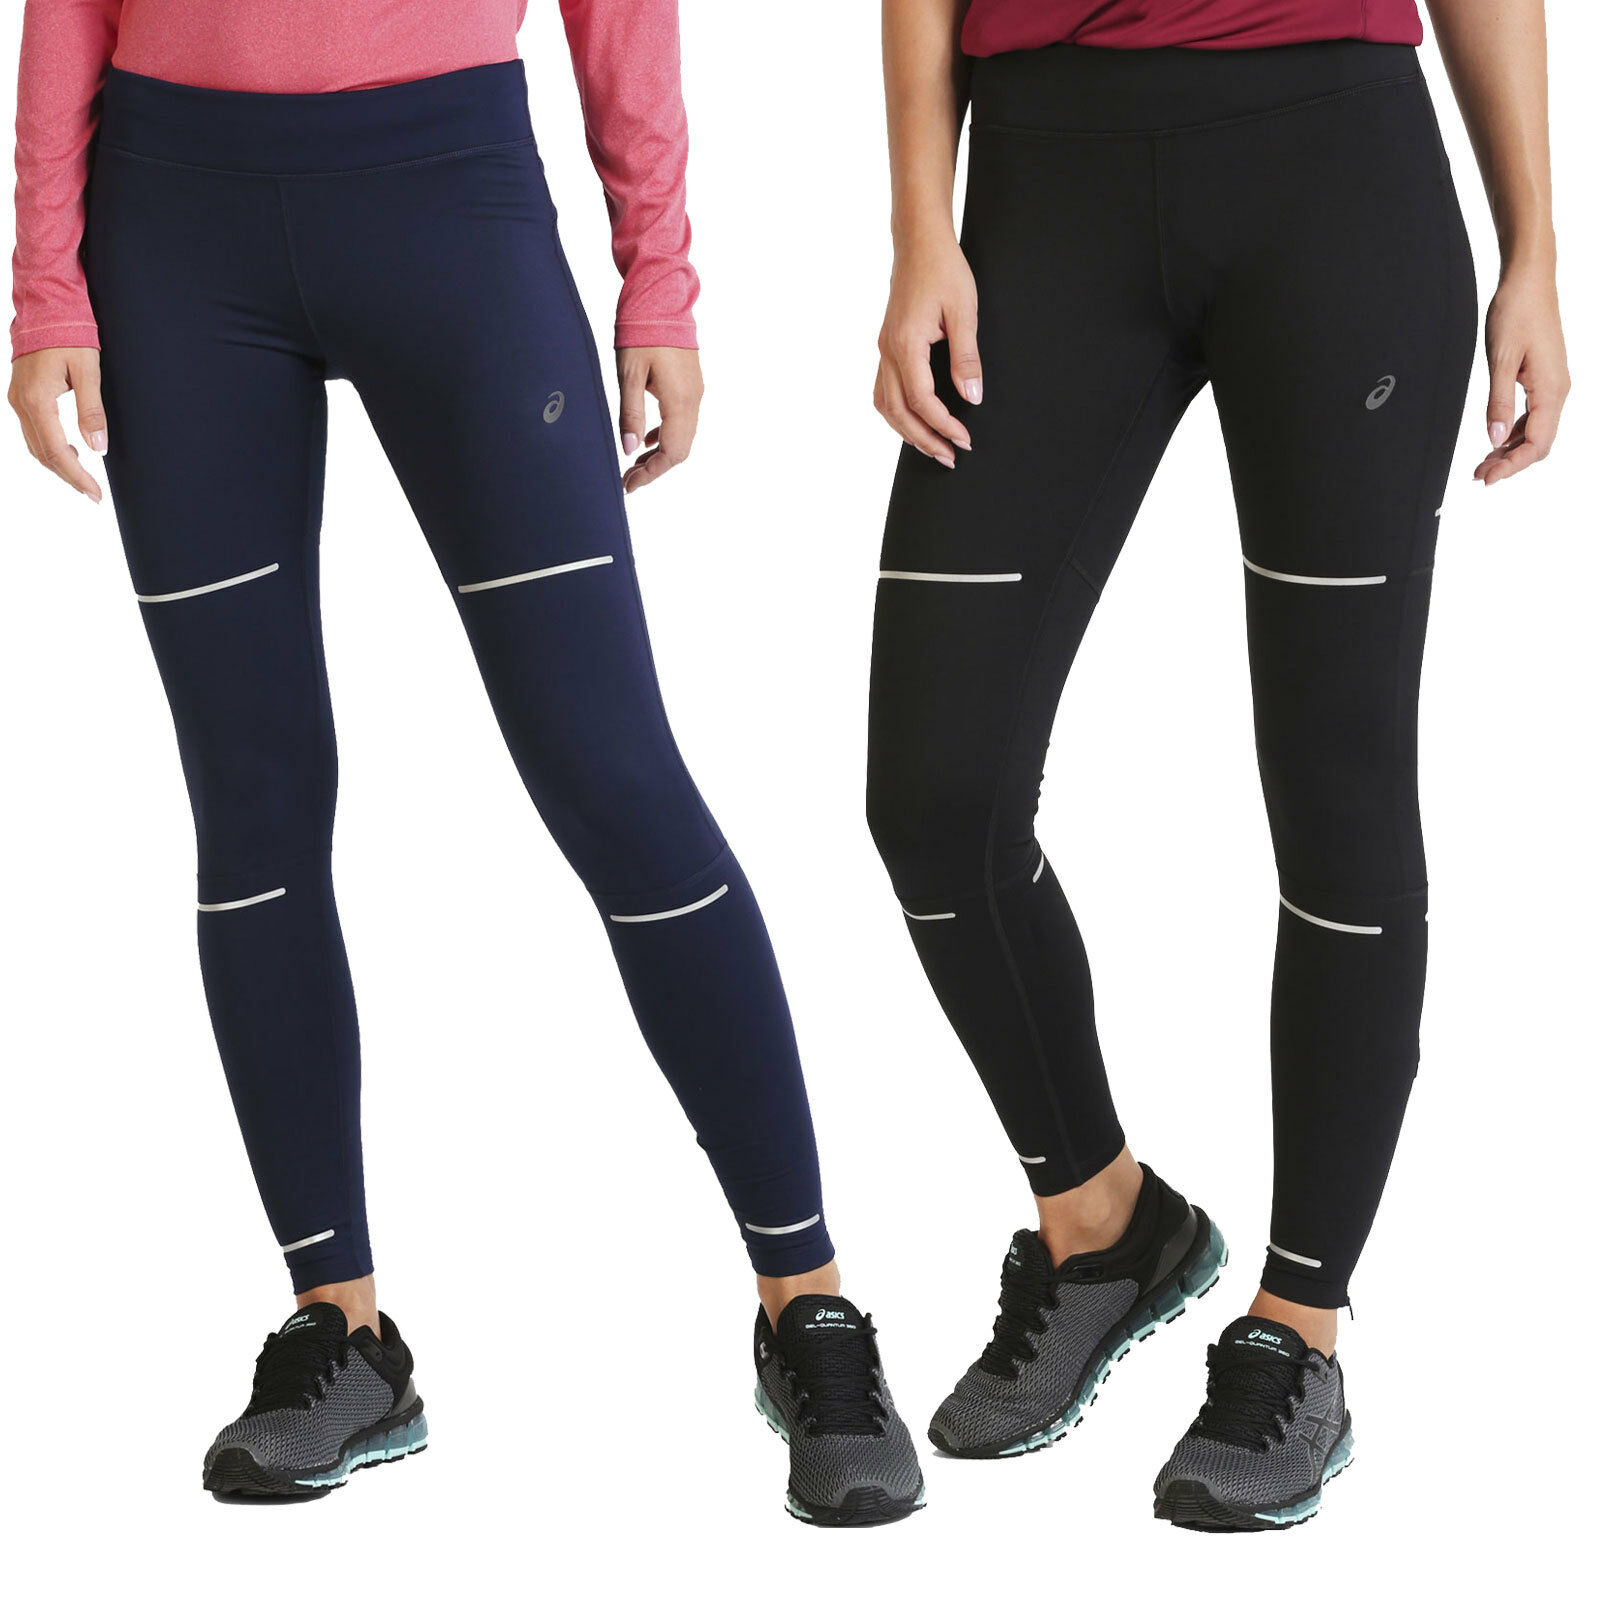 Asics Performance Lite-Show Winter Tight Damen-Laufhose Thermohose Jogging Hose